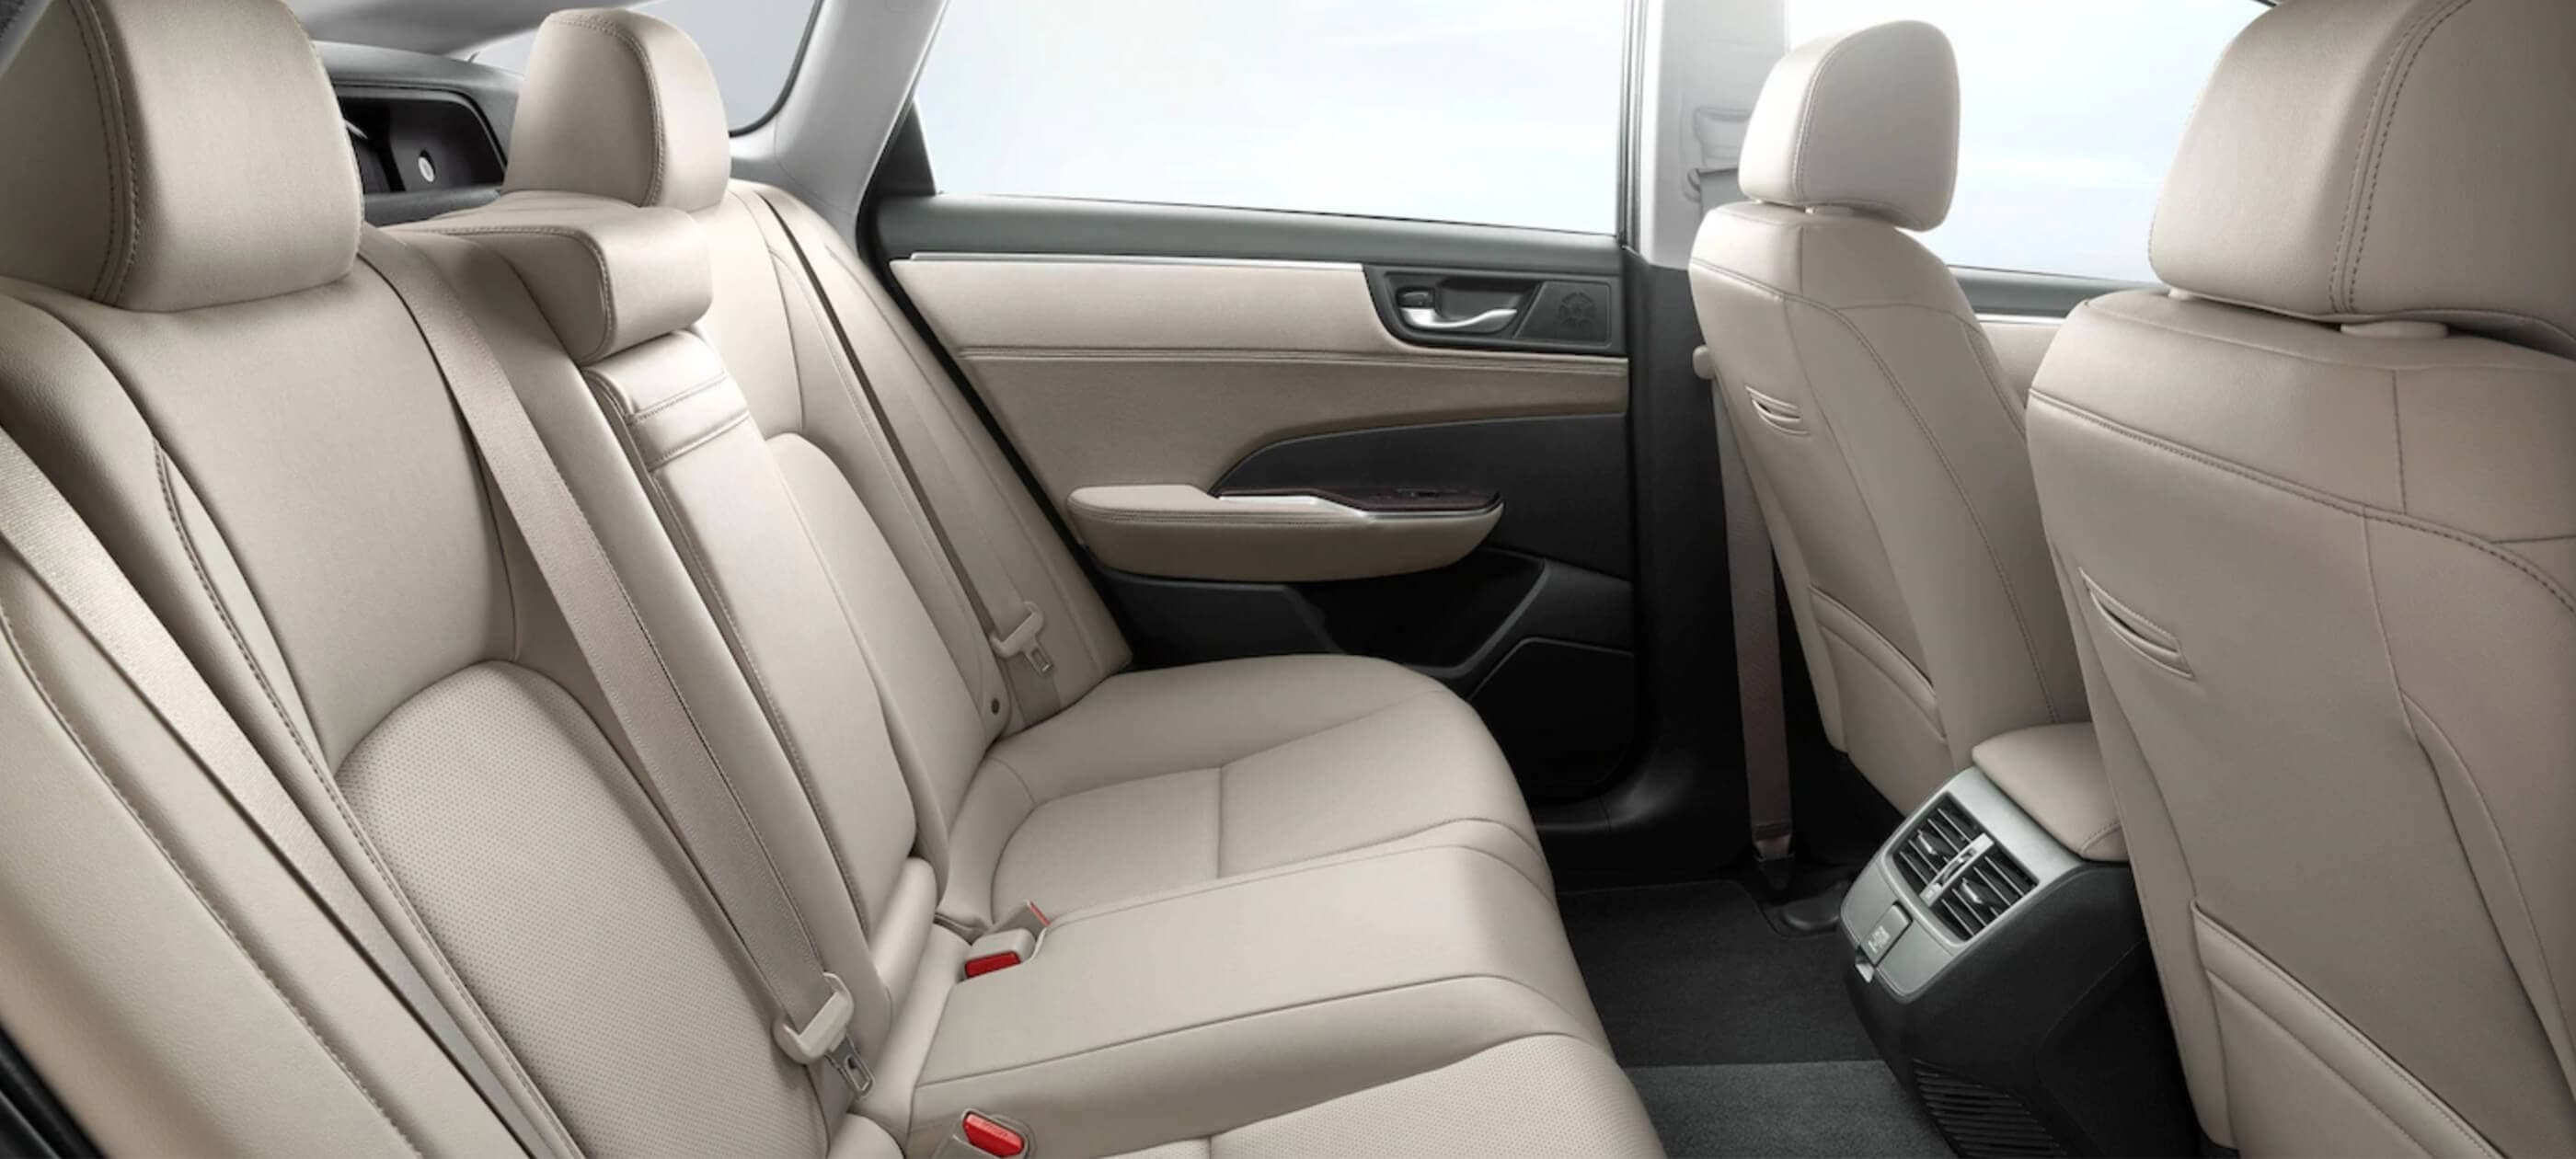 60/40 Split-Folding Rear Seats